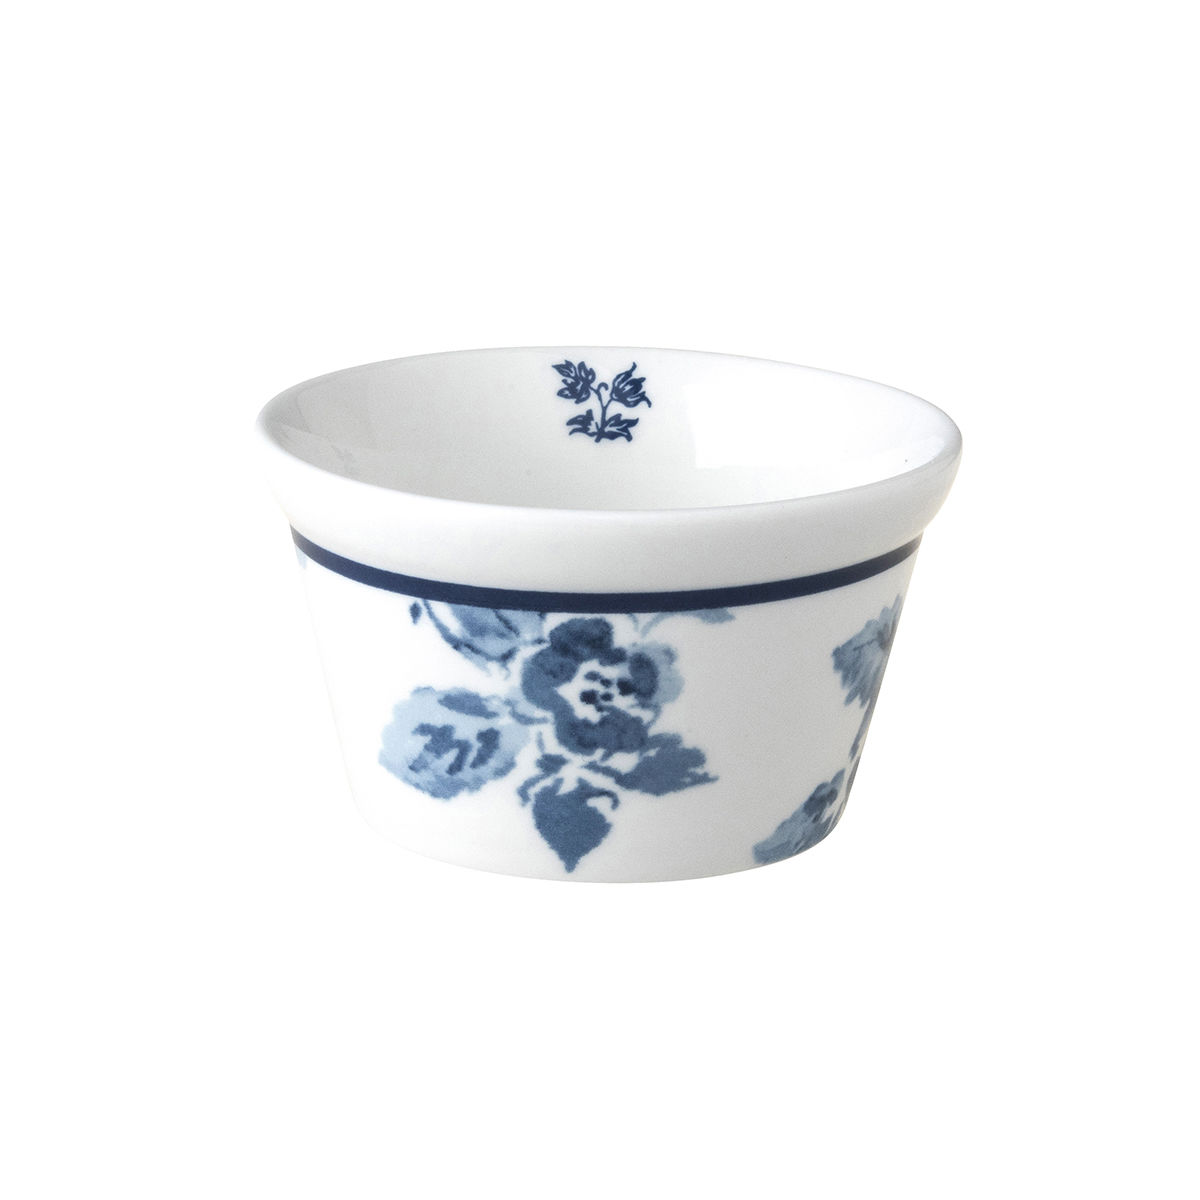 "Laura Ashley 3.5"" Ramekin China Rose - product images  of"